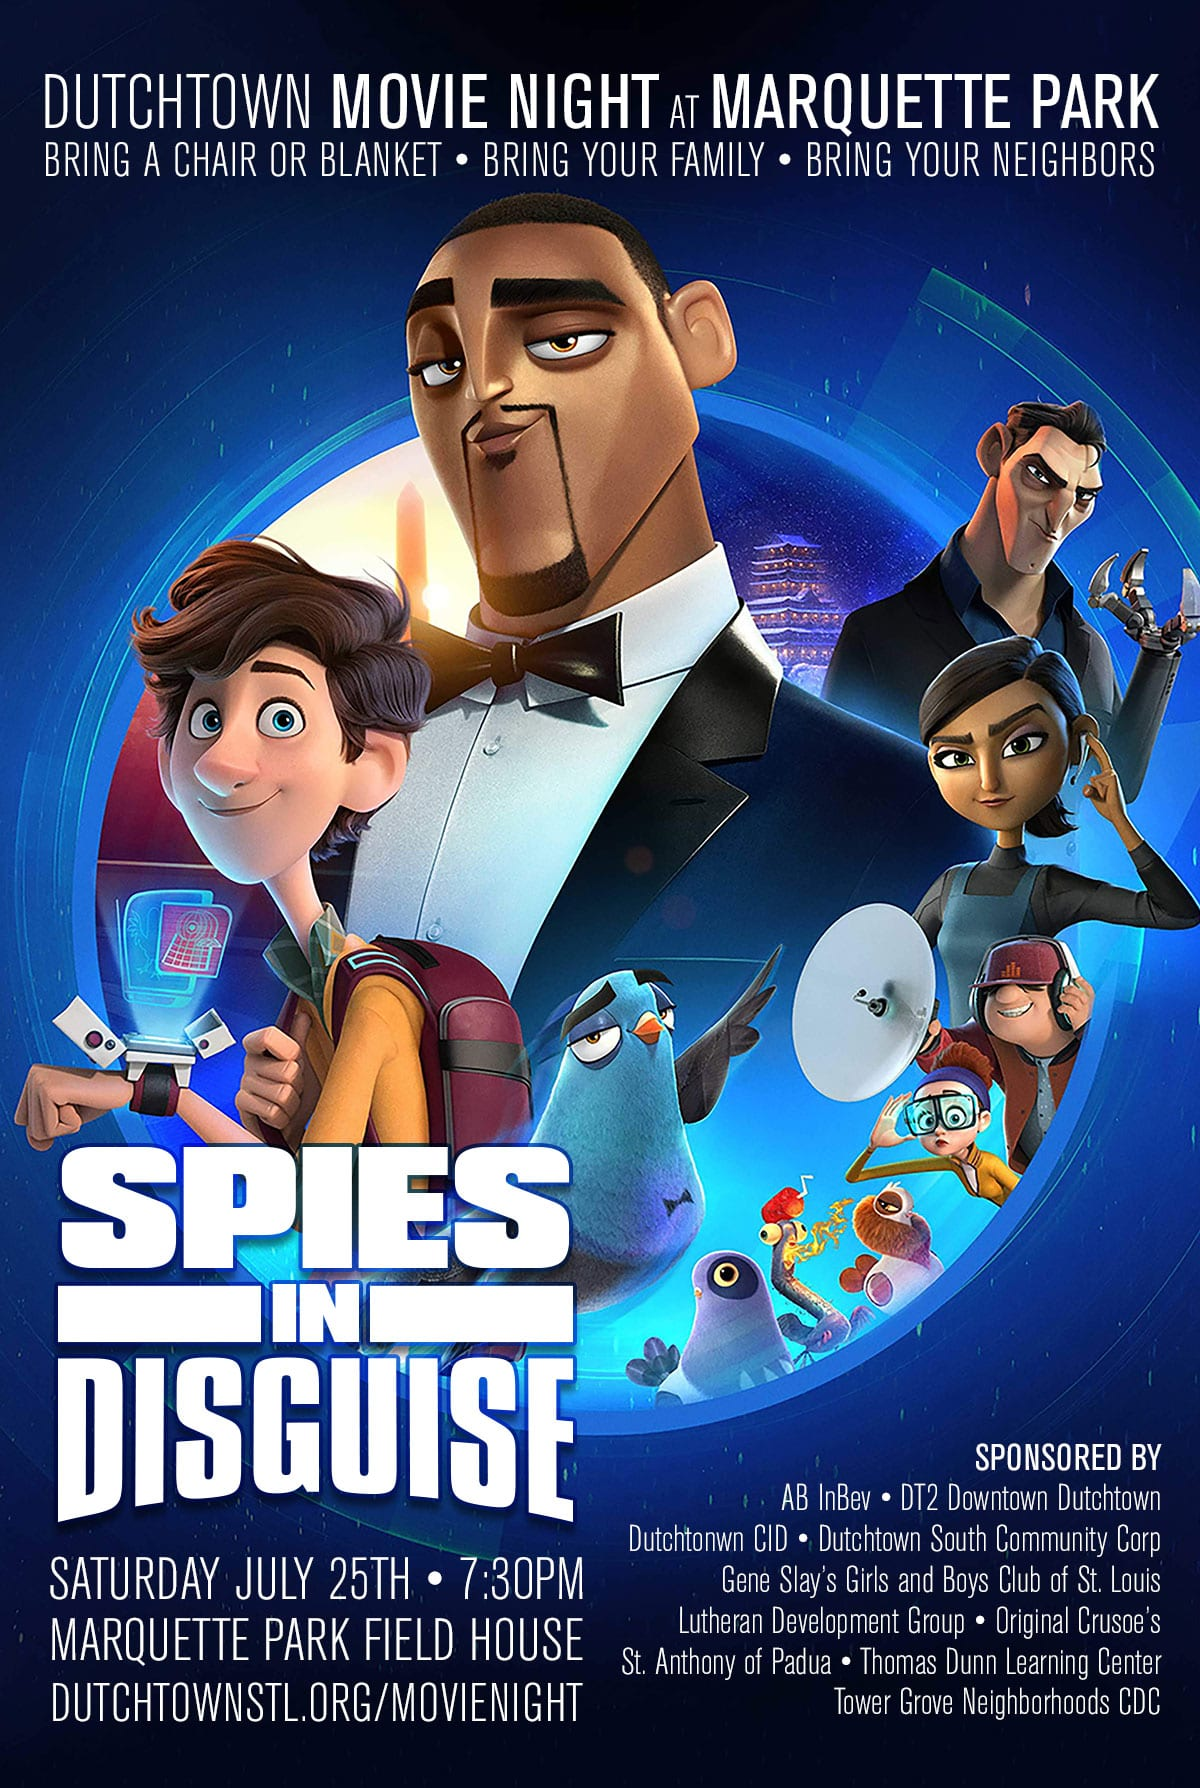 Poster for Dutchtown Movie Night at Marquette Park: Spies in Disguise.